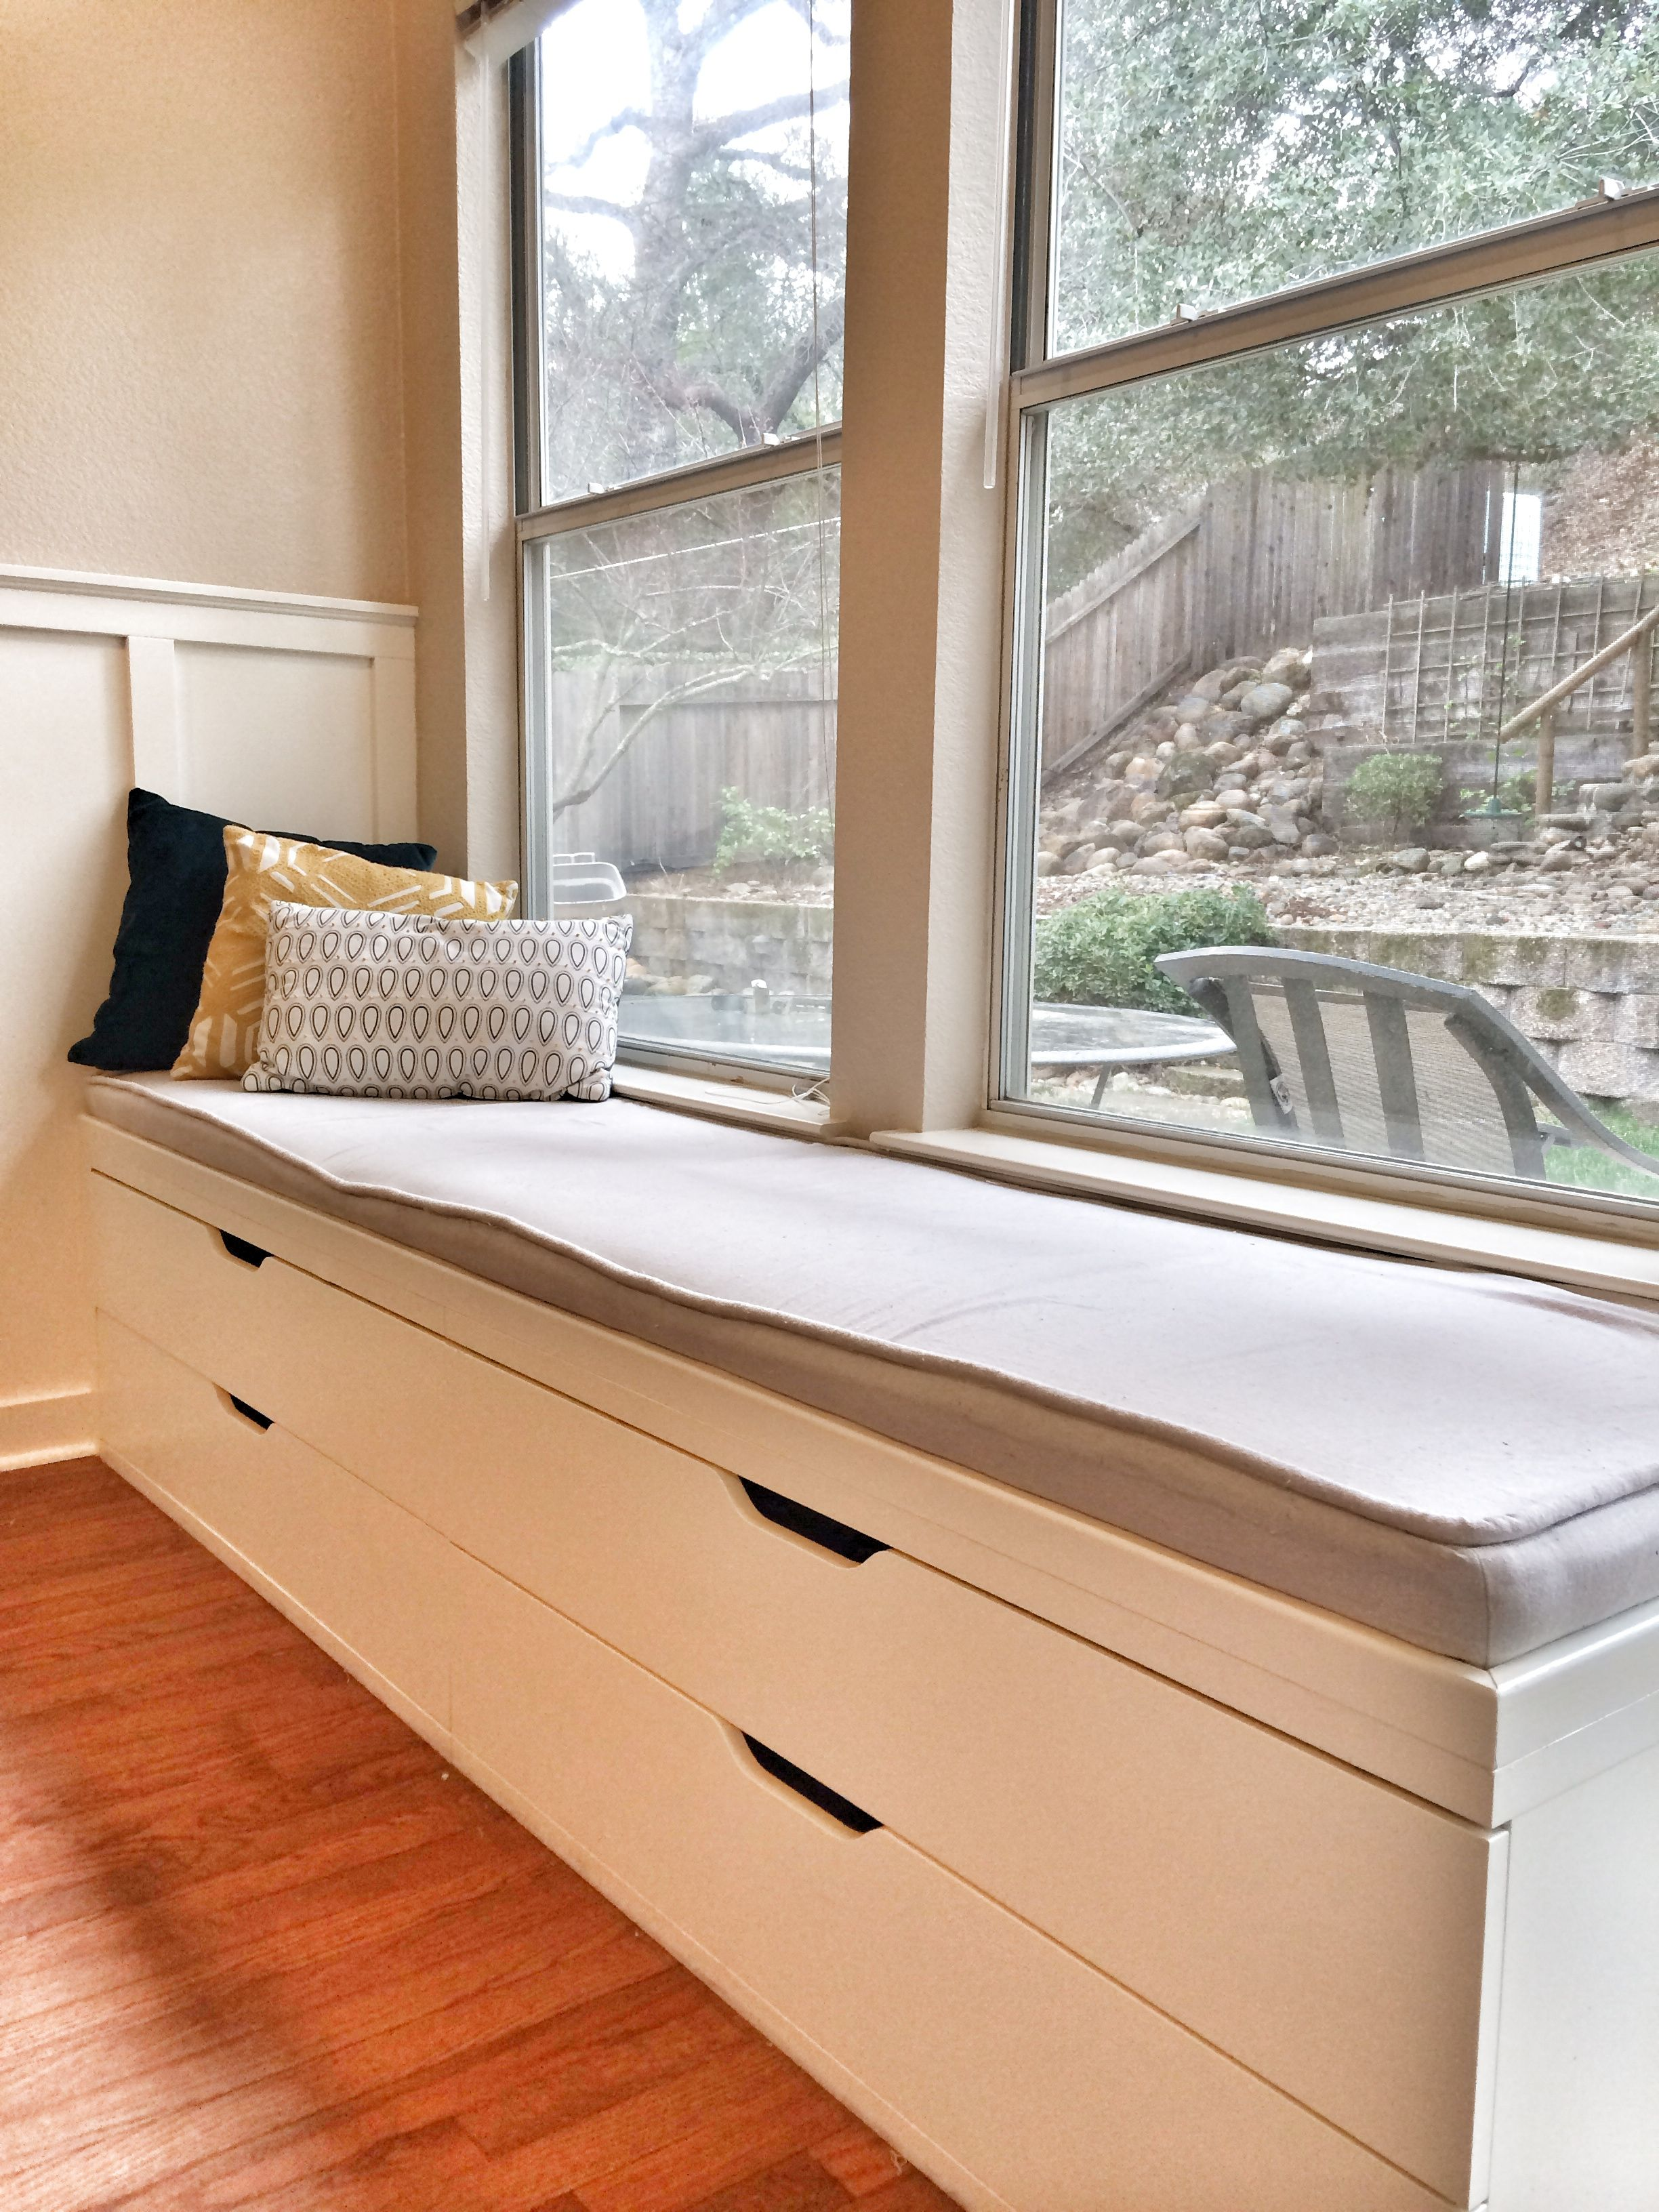 Küchenbänke Ikea Another Way To Do A Window Seat From Ikea Stuff. | Home